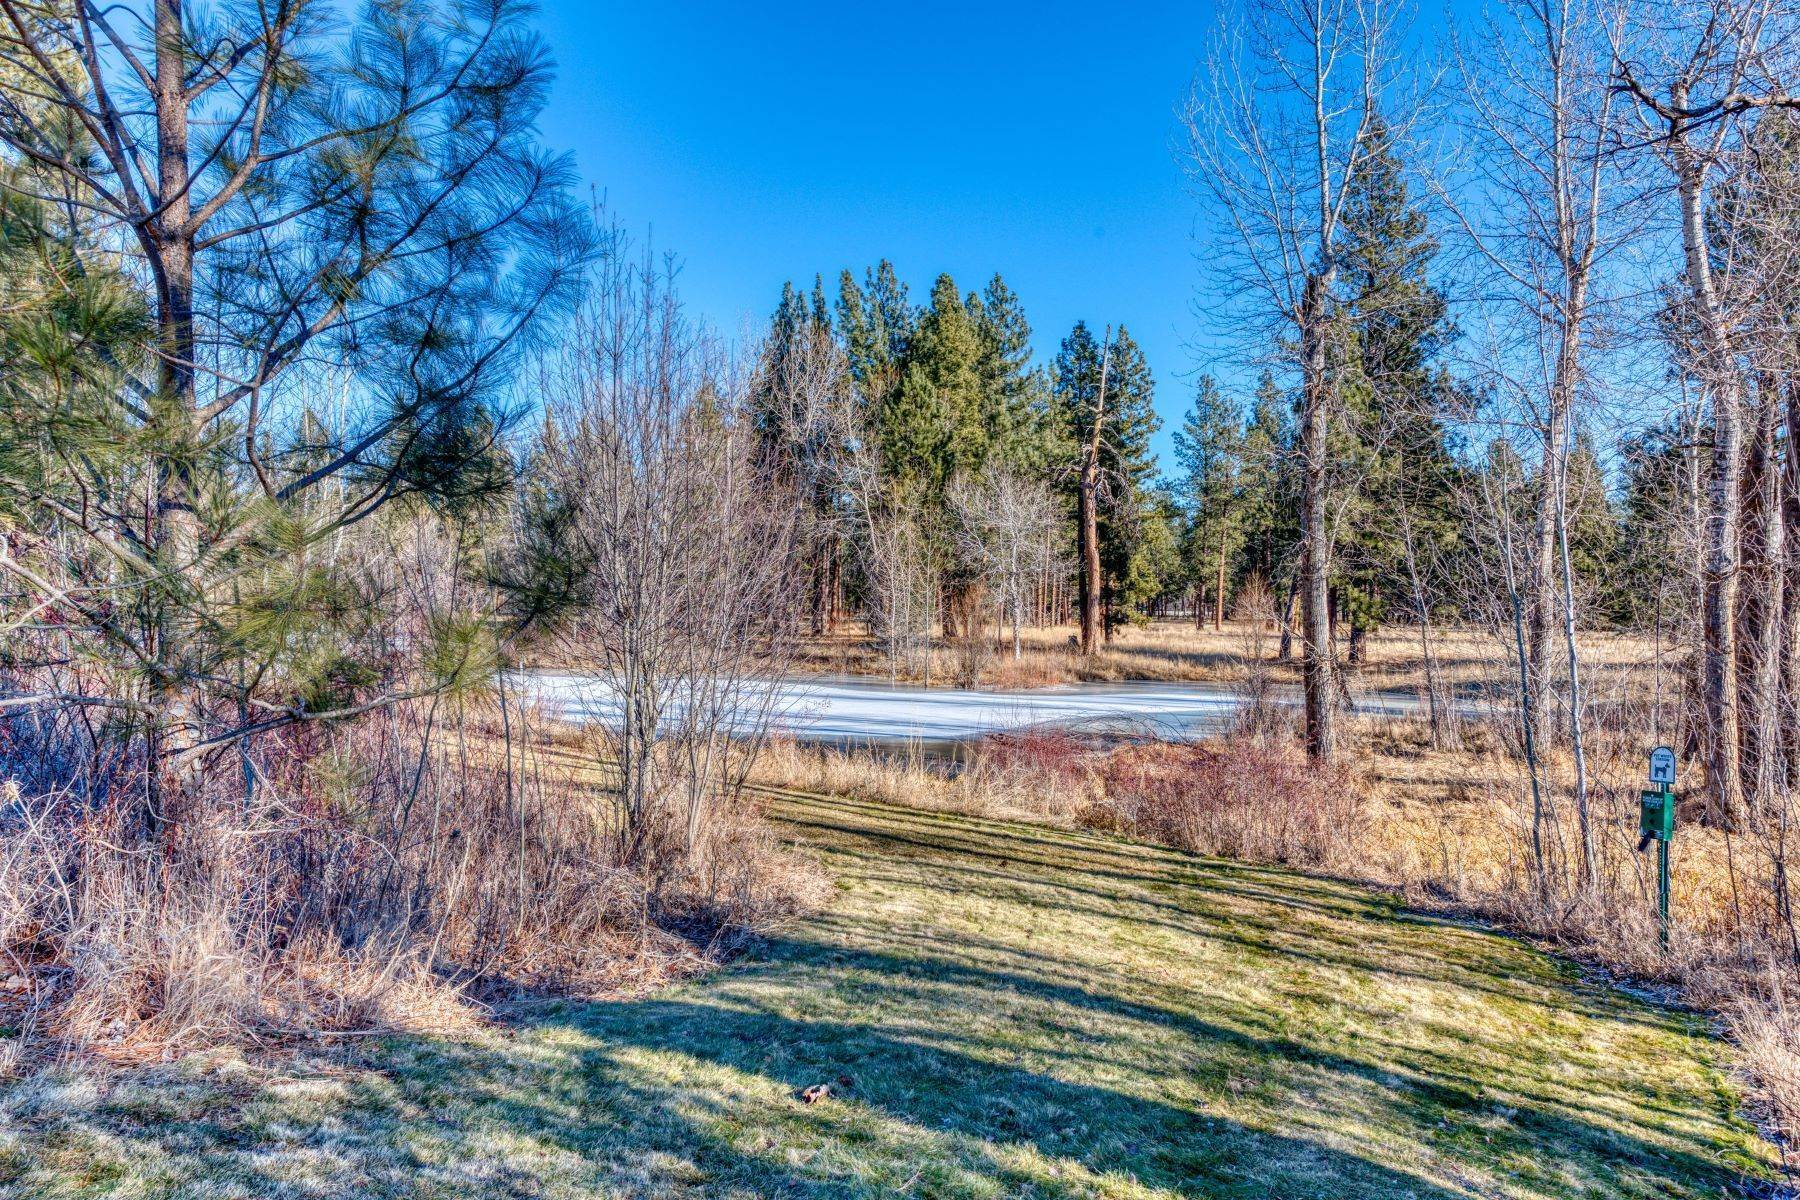 Property for Sale at Storybook Montana - Cabin Creek 3377 Us-93 Stevensville, Montana 59870 United States